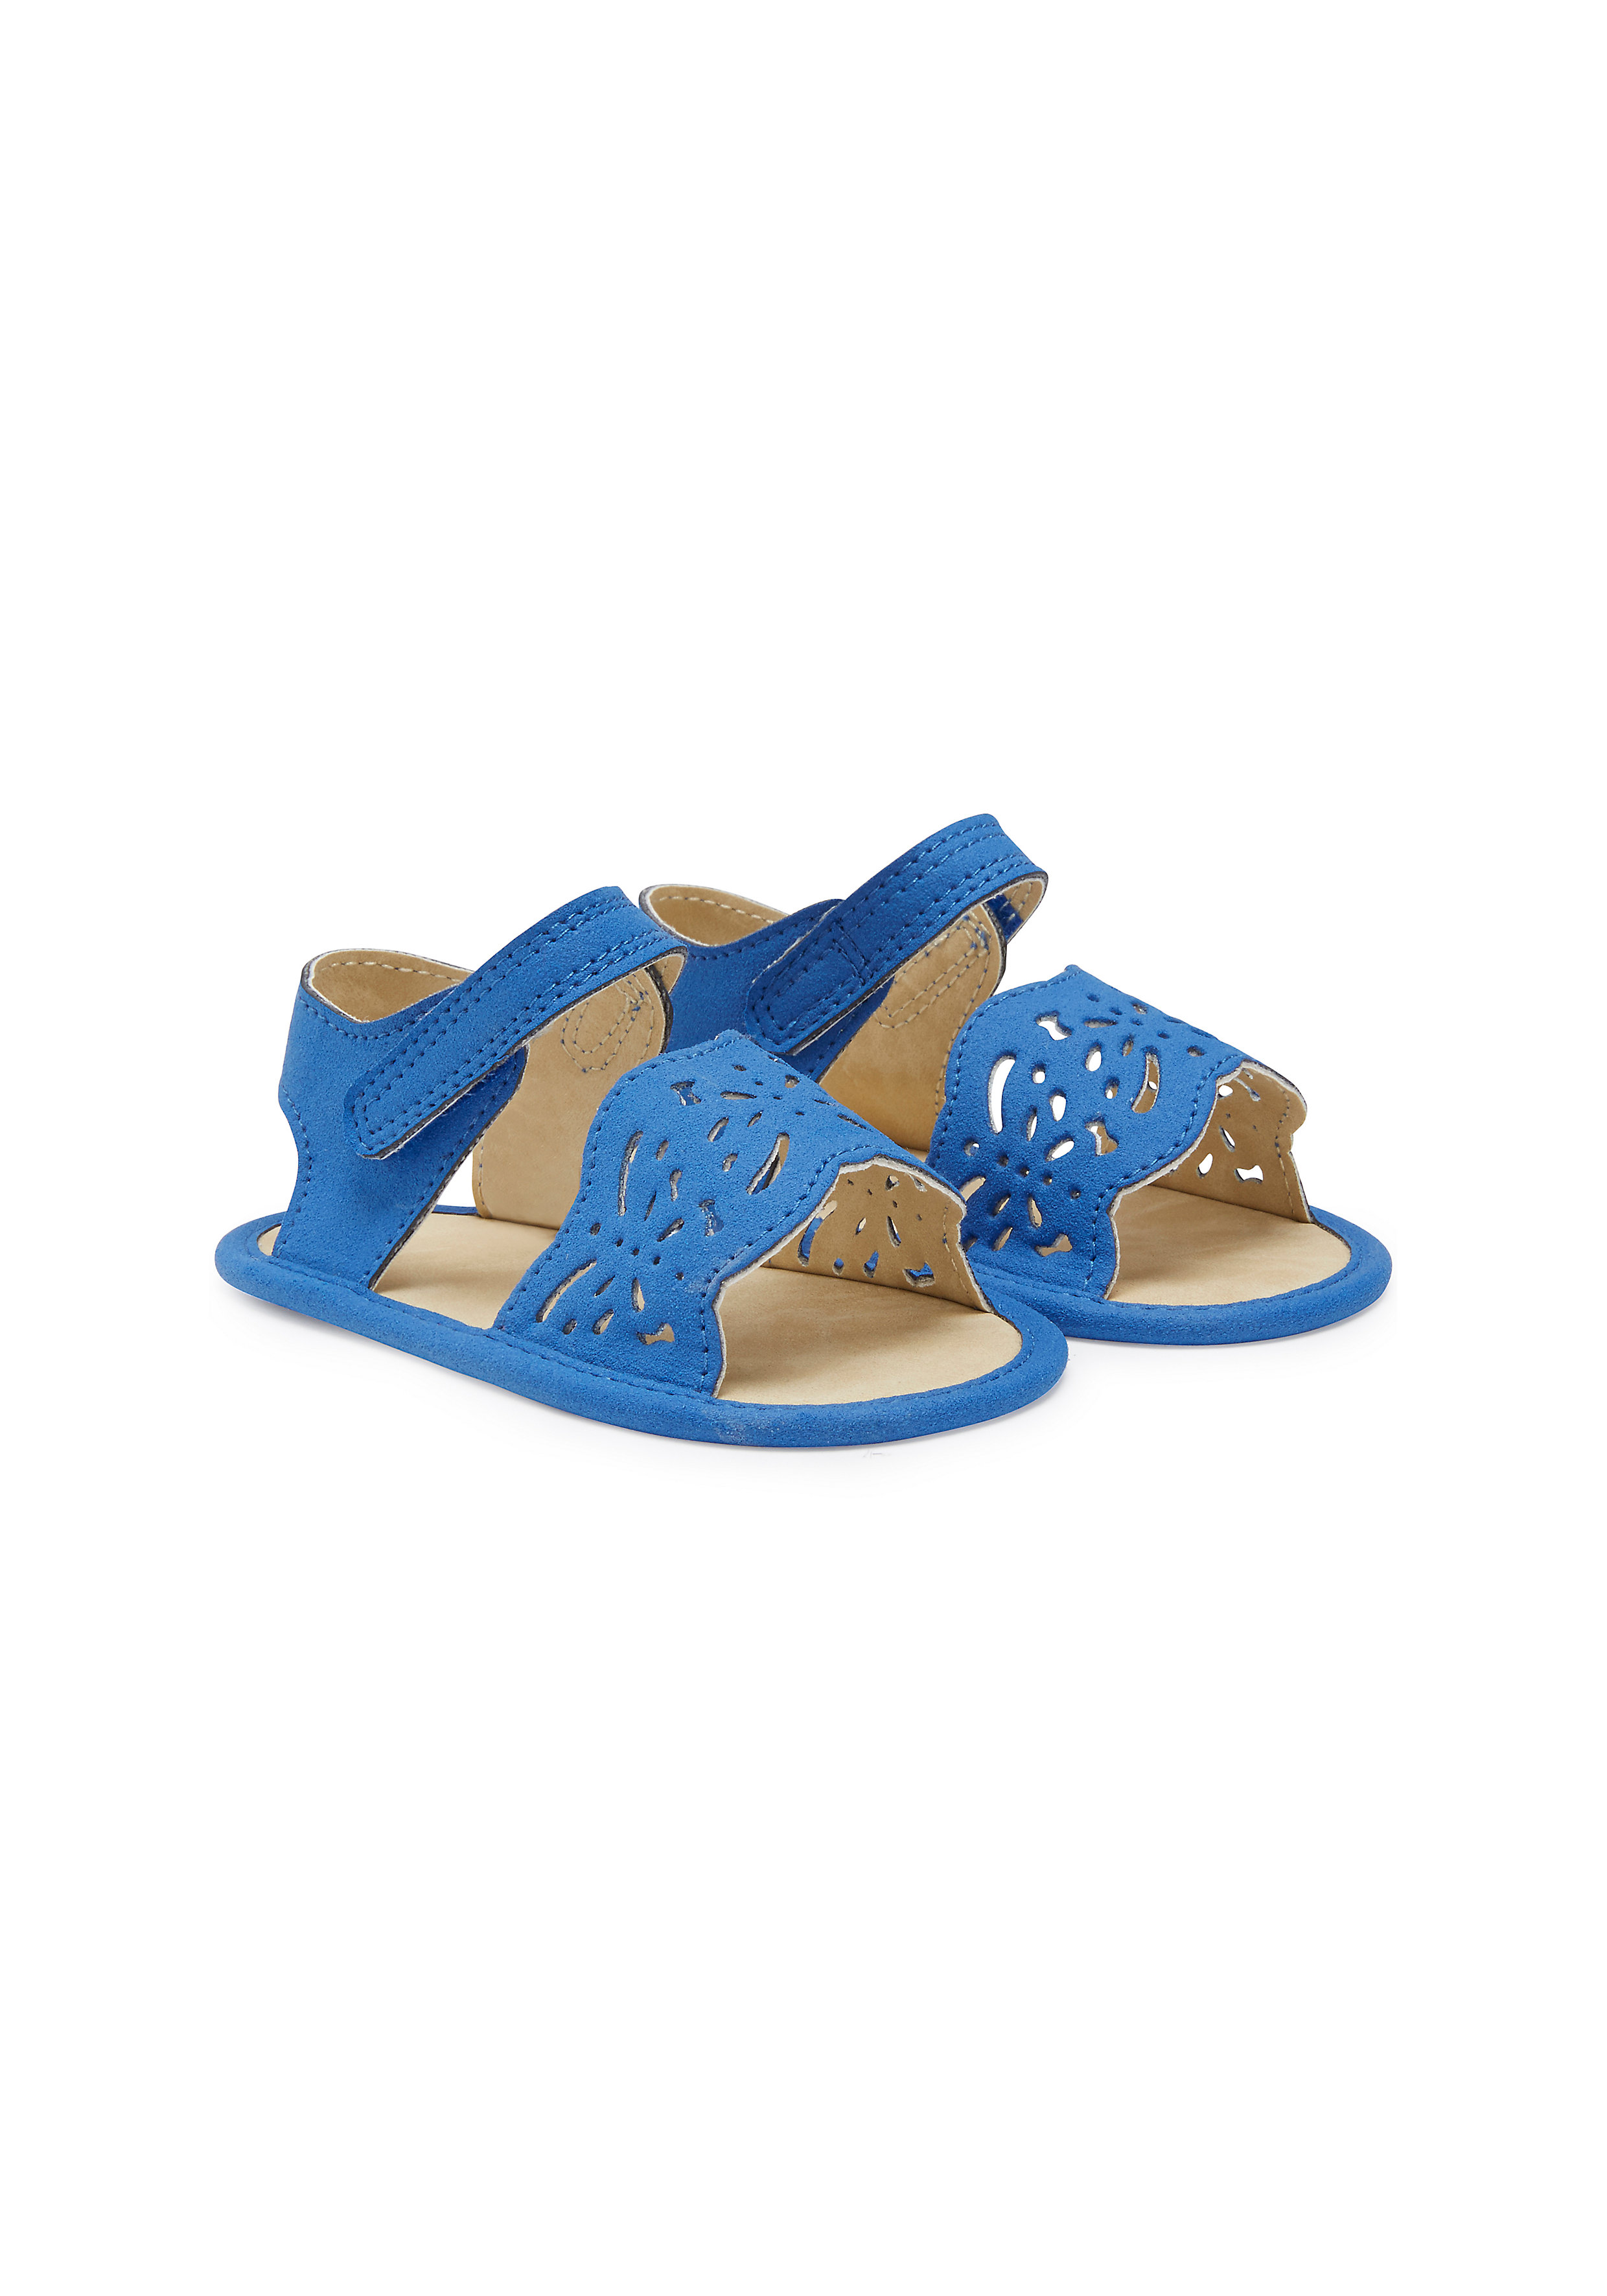 Mothercare | Girls Cut Out Sandals - Blue